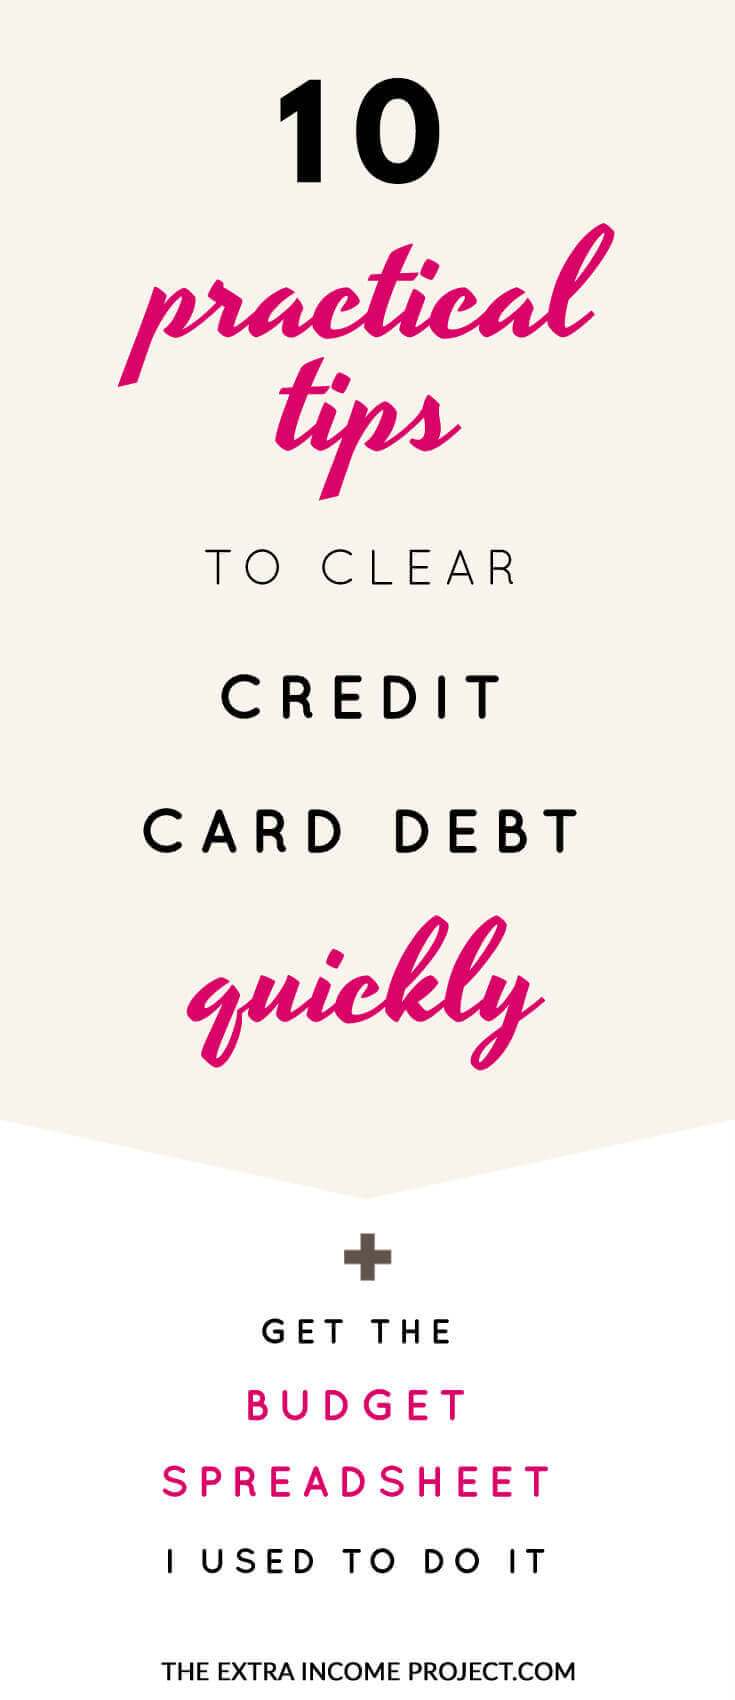 10 practical tips to clear credit card debt quickly for Quick will template